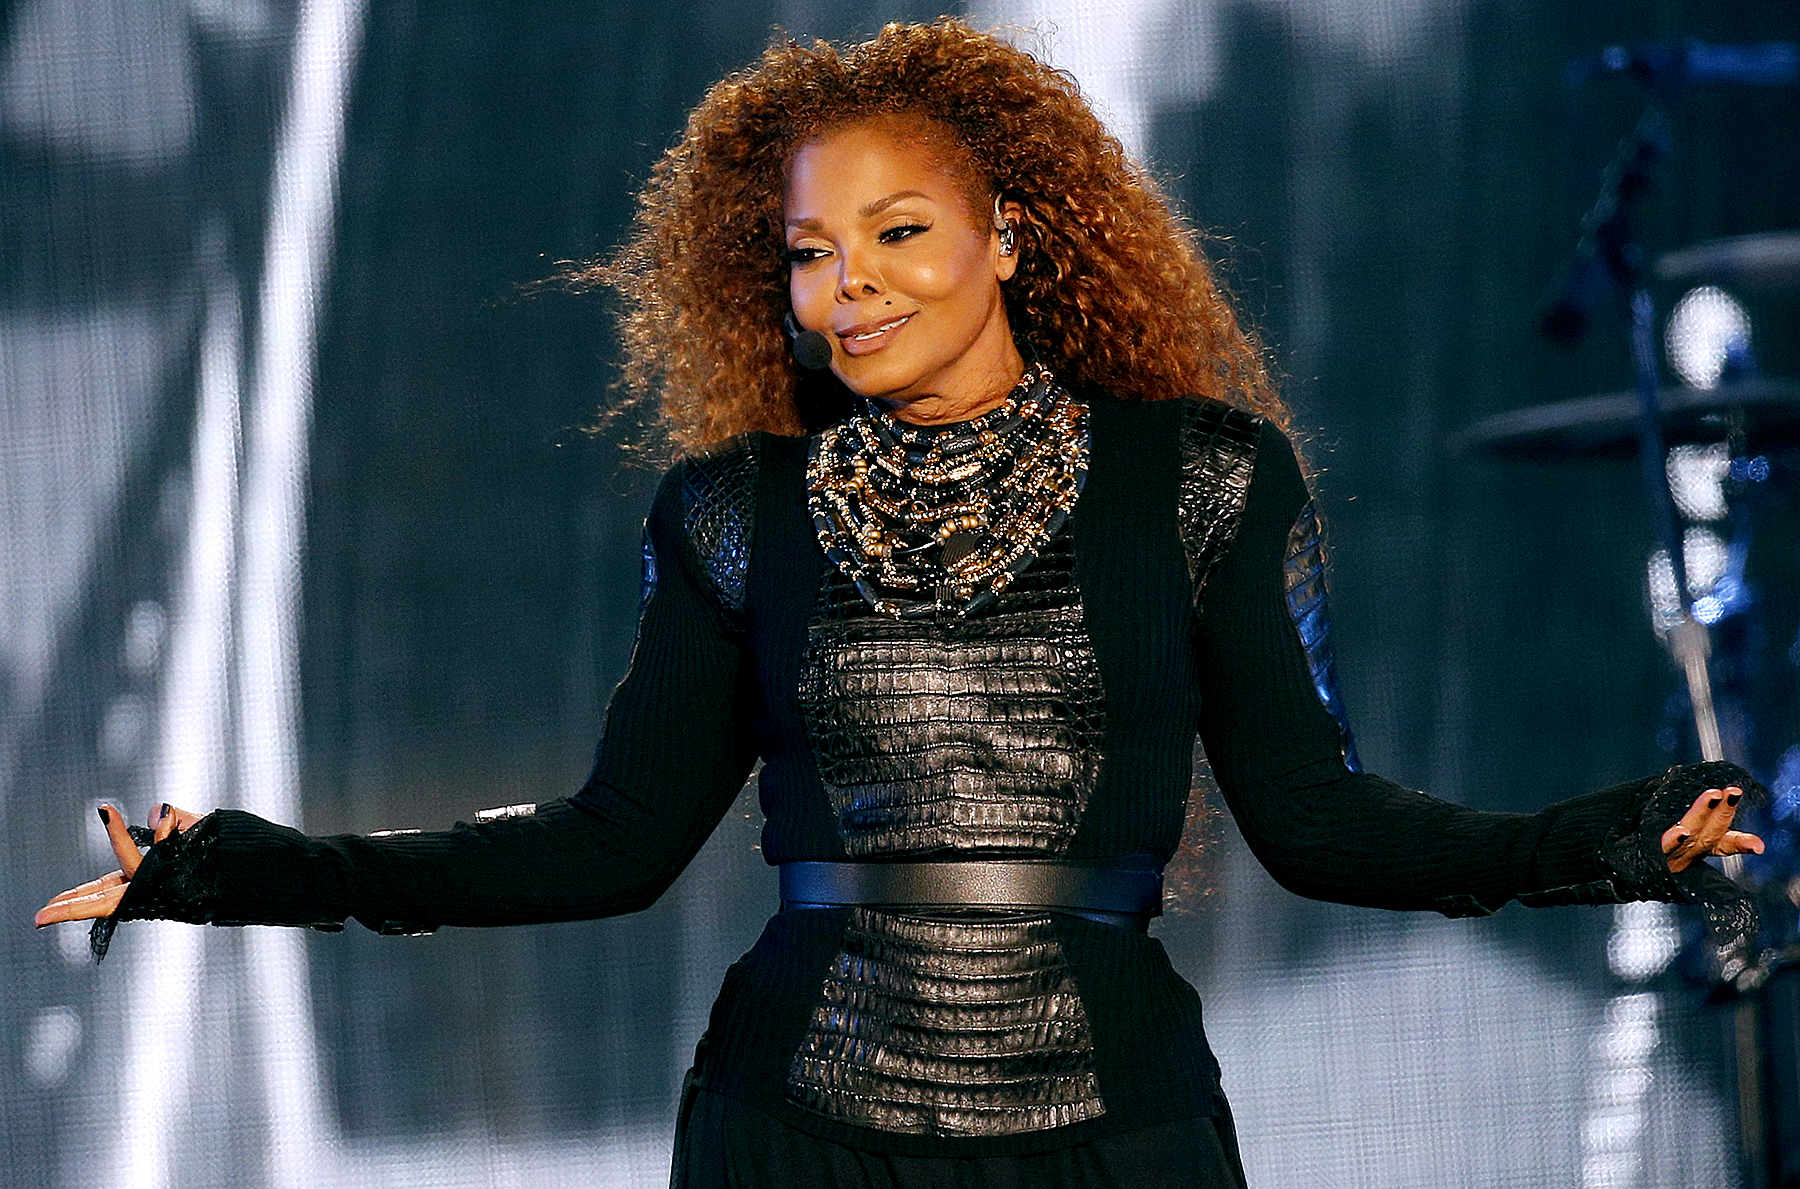 Janet Jackson performs during the Dubai World Cup horse racing event on March 26, 2016 at the Meydan racecourse in the United Arab Emirate of Dubai.